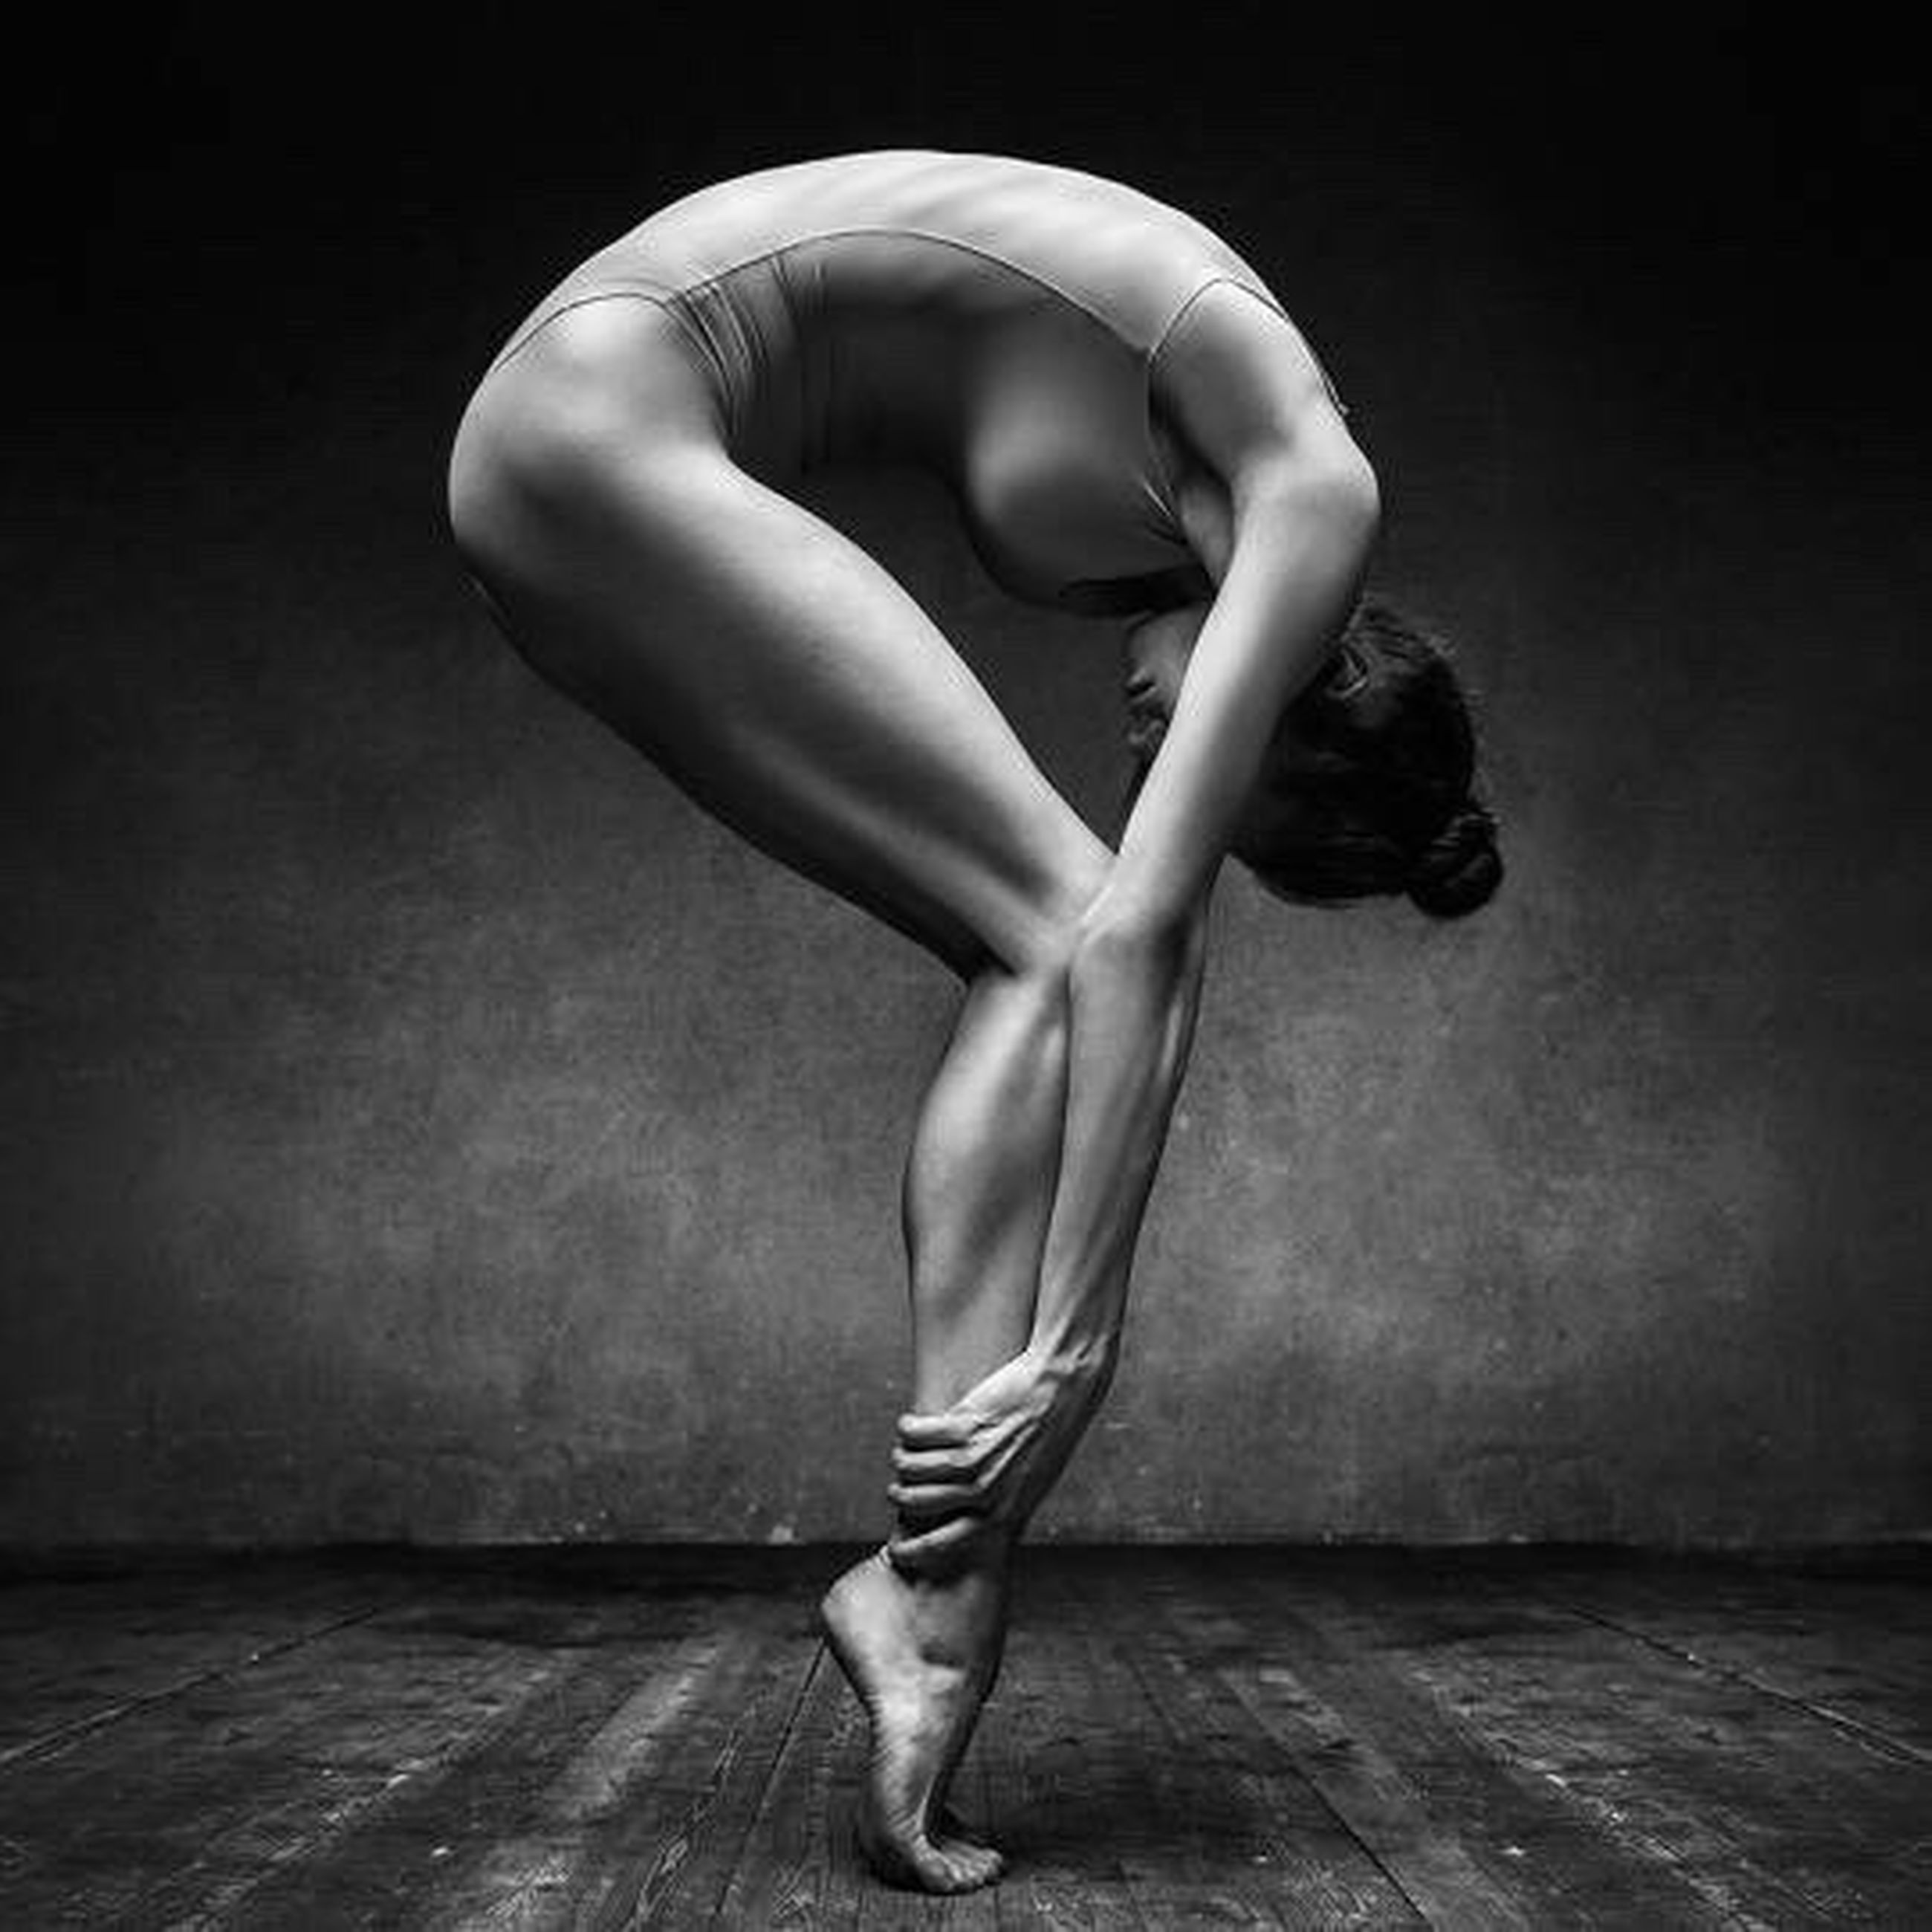 full length, flexibility, only women, grace, ballet dancer, one woman only, beauty, ballet, barefoot, women, young adult, one person, stretching, adults only, adult, one young woman only, performance, people, black background, day